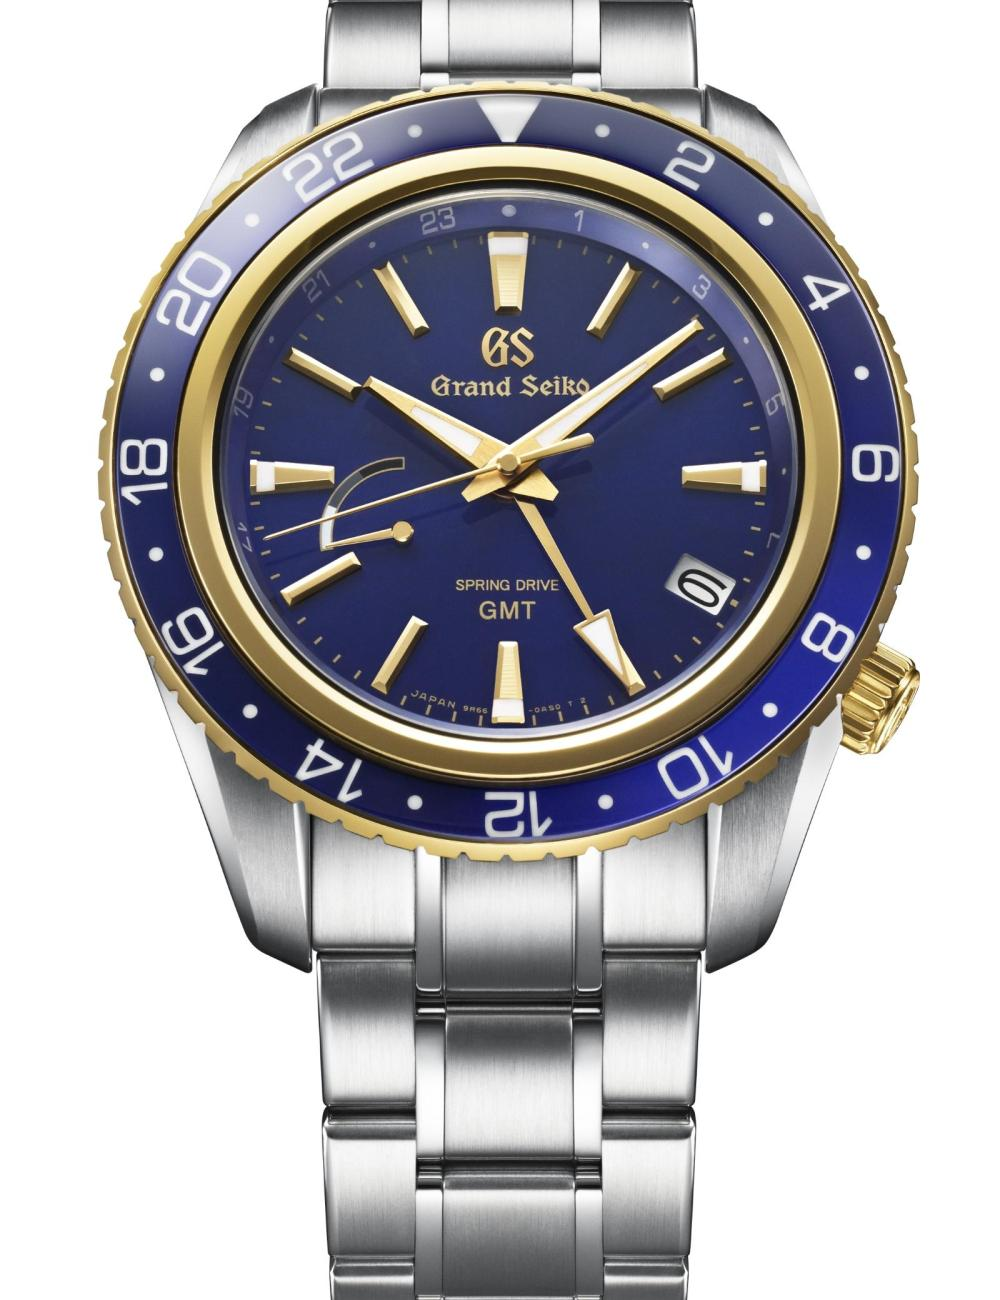 Grand Seiko Spring Drive GMT Caliber 9R66